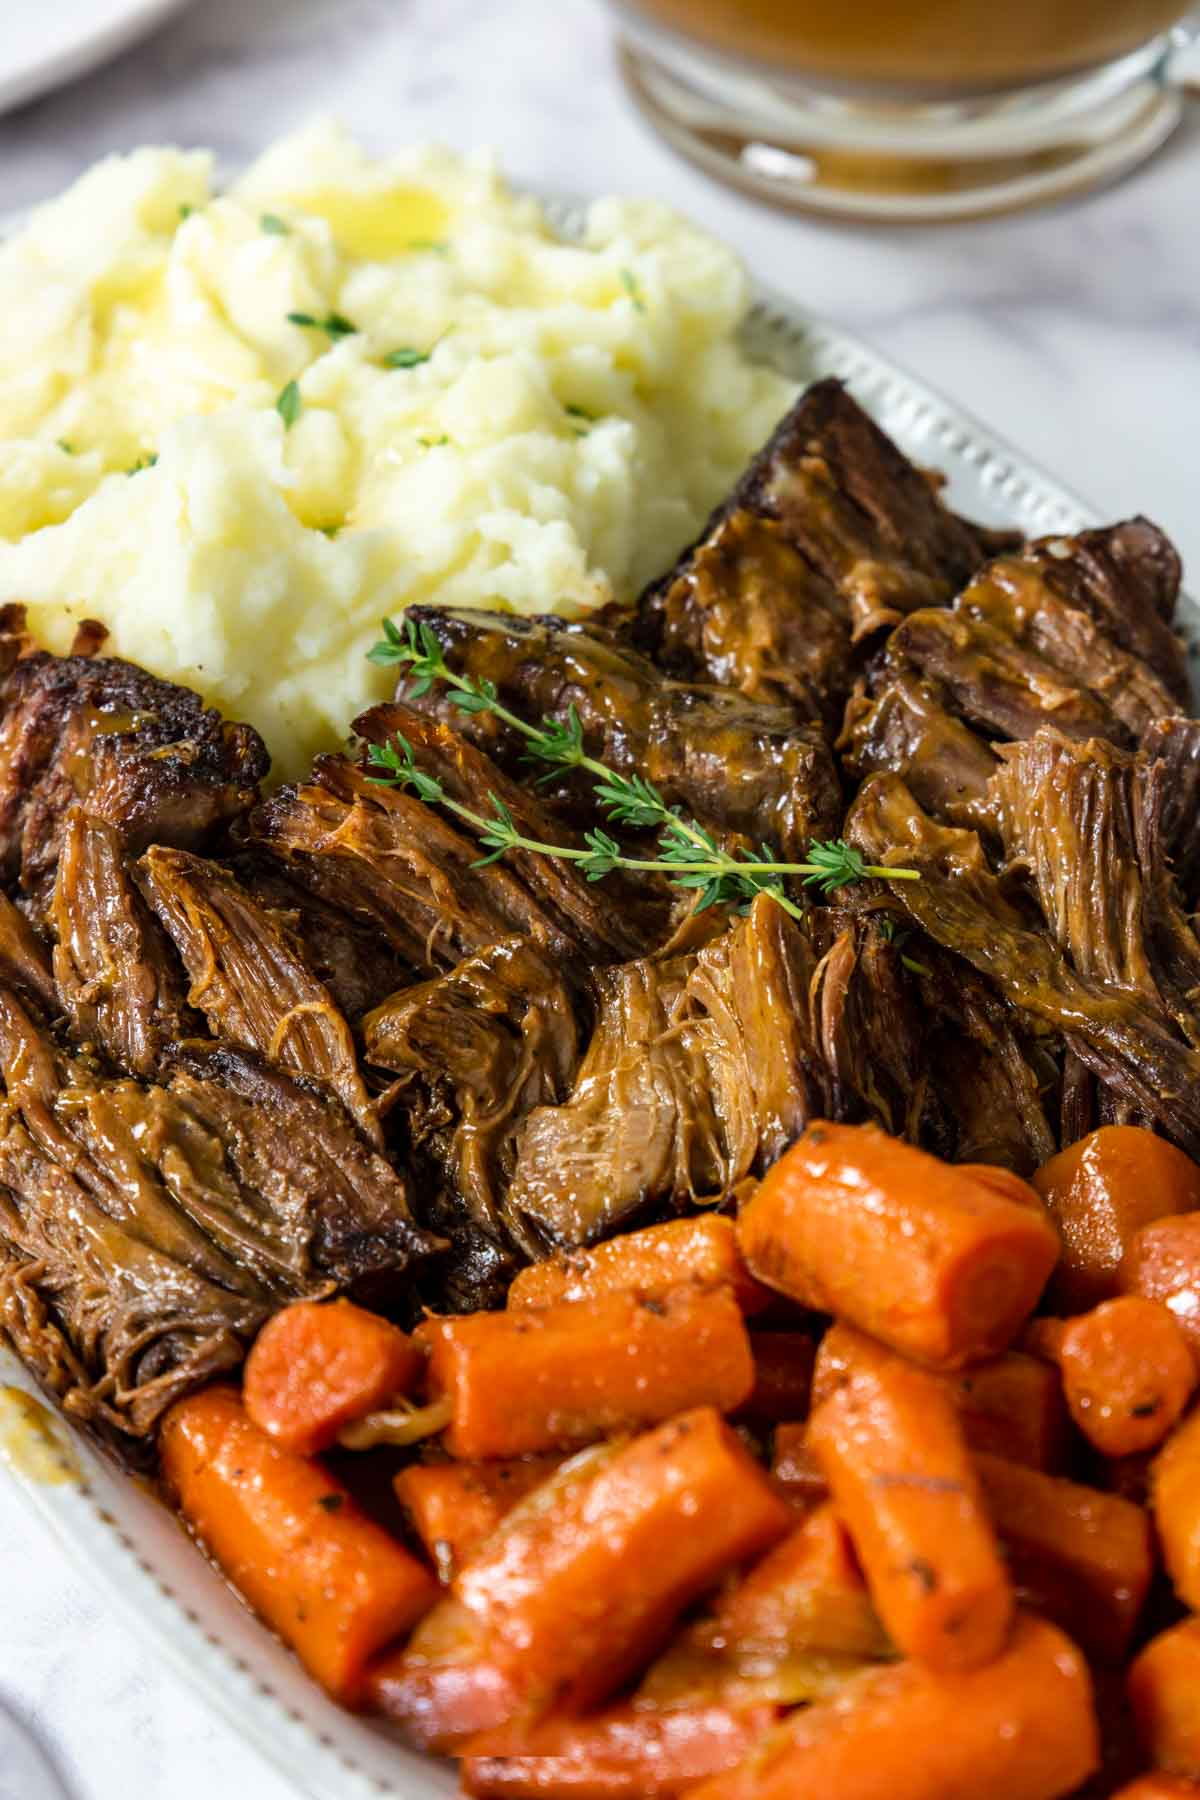 a serving plate with pot roast, mashed potatoes, and cooked carrots